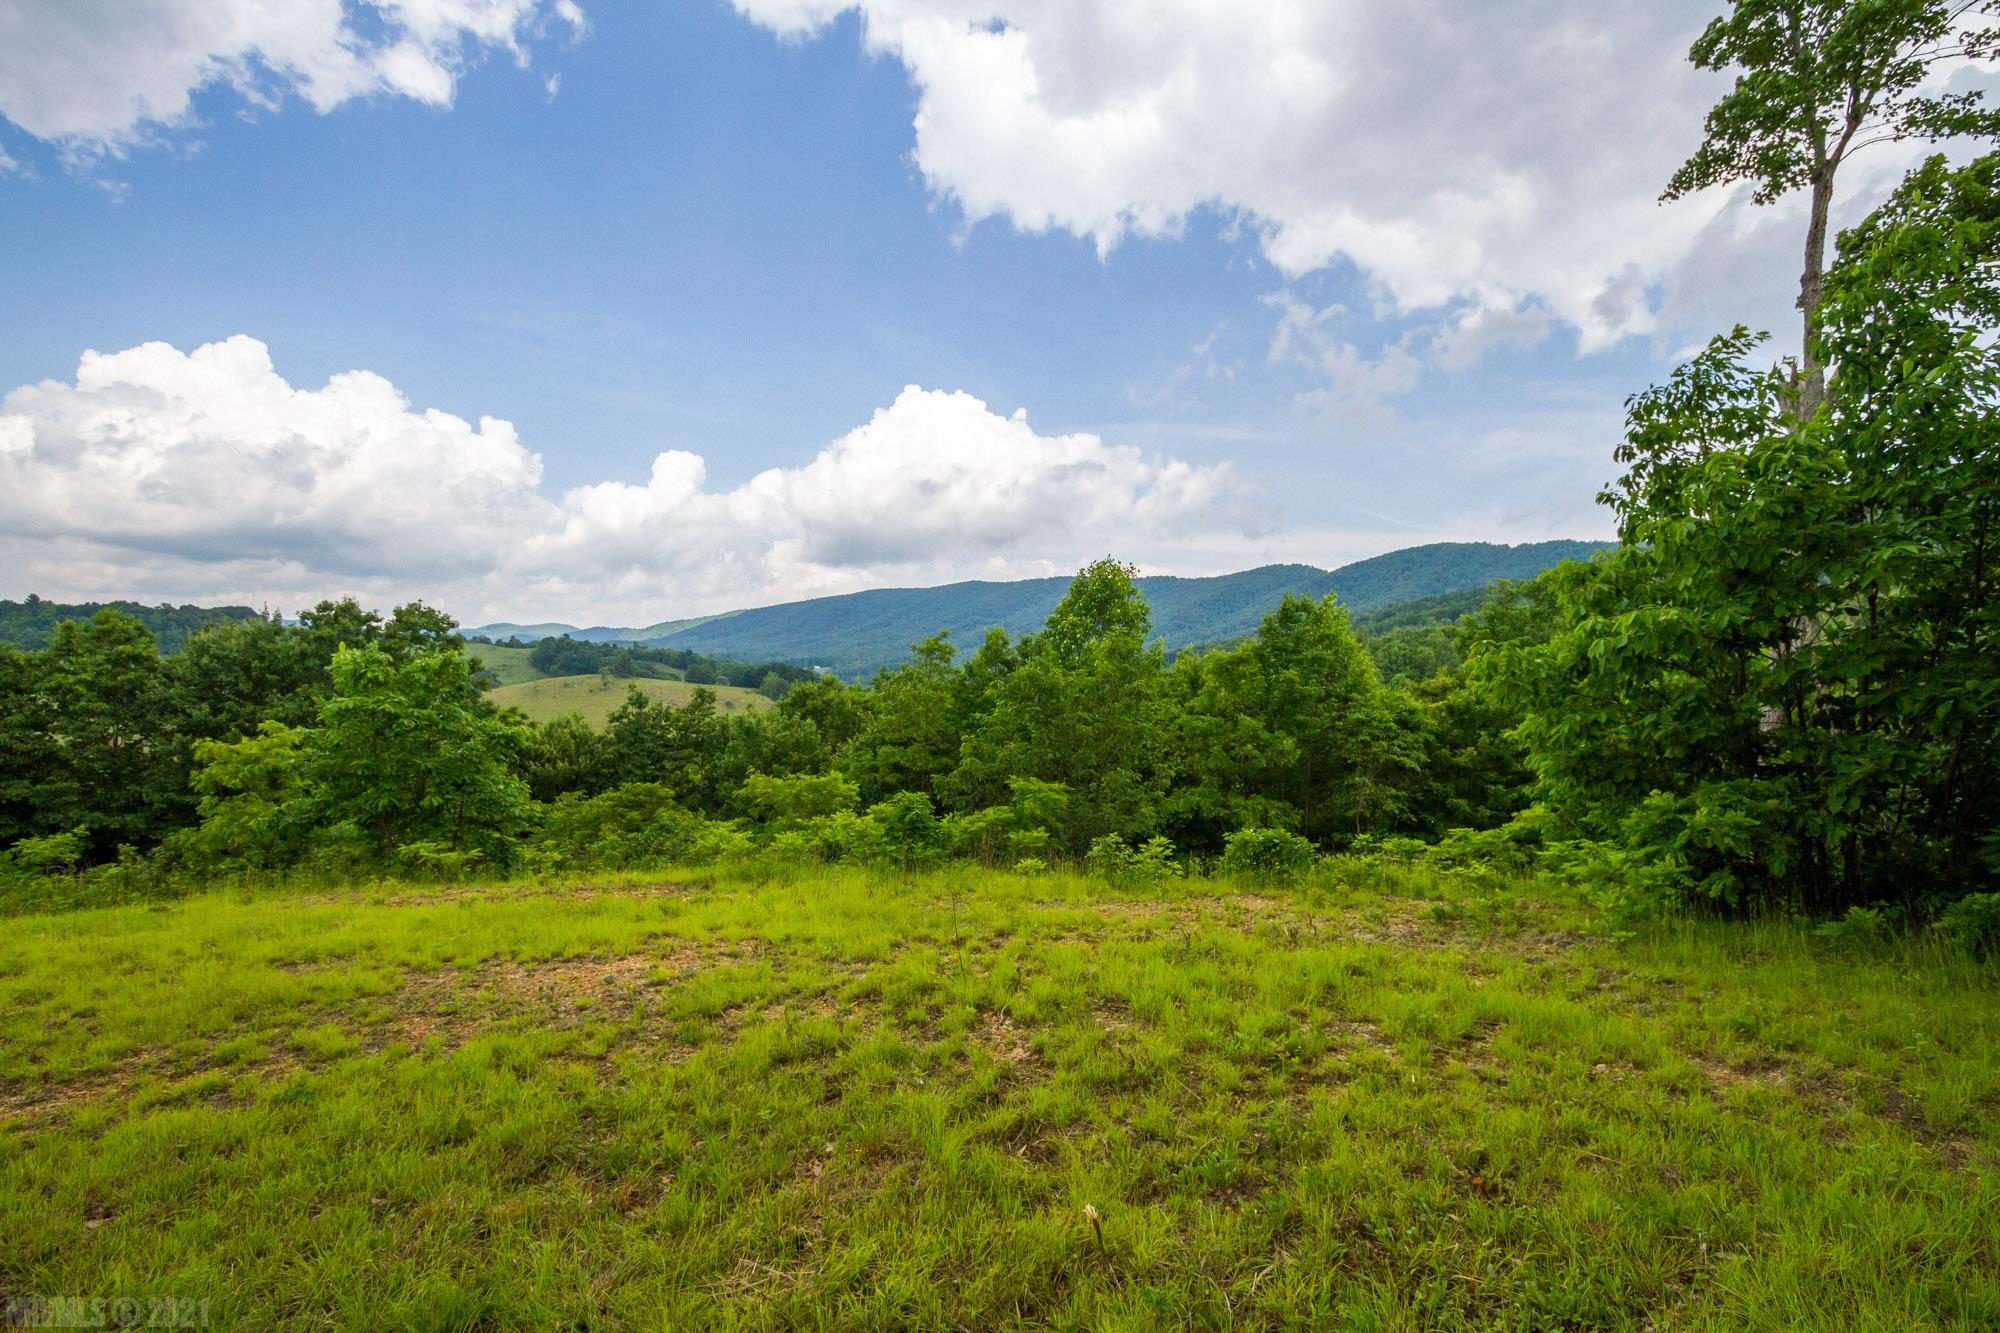 Beautiful mountain views of Elk Creek Valley located in Grayson County. This is one of two adjoining tracts. This lot has its own entrance and road leading up to a buildable home site with an outstanding view. A small tiny cabin is already partially fixed. Gentle stream runs through Lots 4 & 5. This property offers plenty of seclusion and acreage, even adjoining Jefferson National Forest. Very close to hiking trails and horse camps. Lot 5 has been perked for a 3 bedroom septic system. Lot 4 & 5 can be sold individually or together. Call for an appointment today!